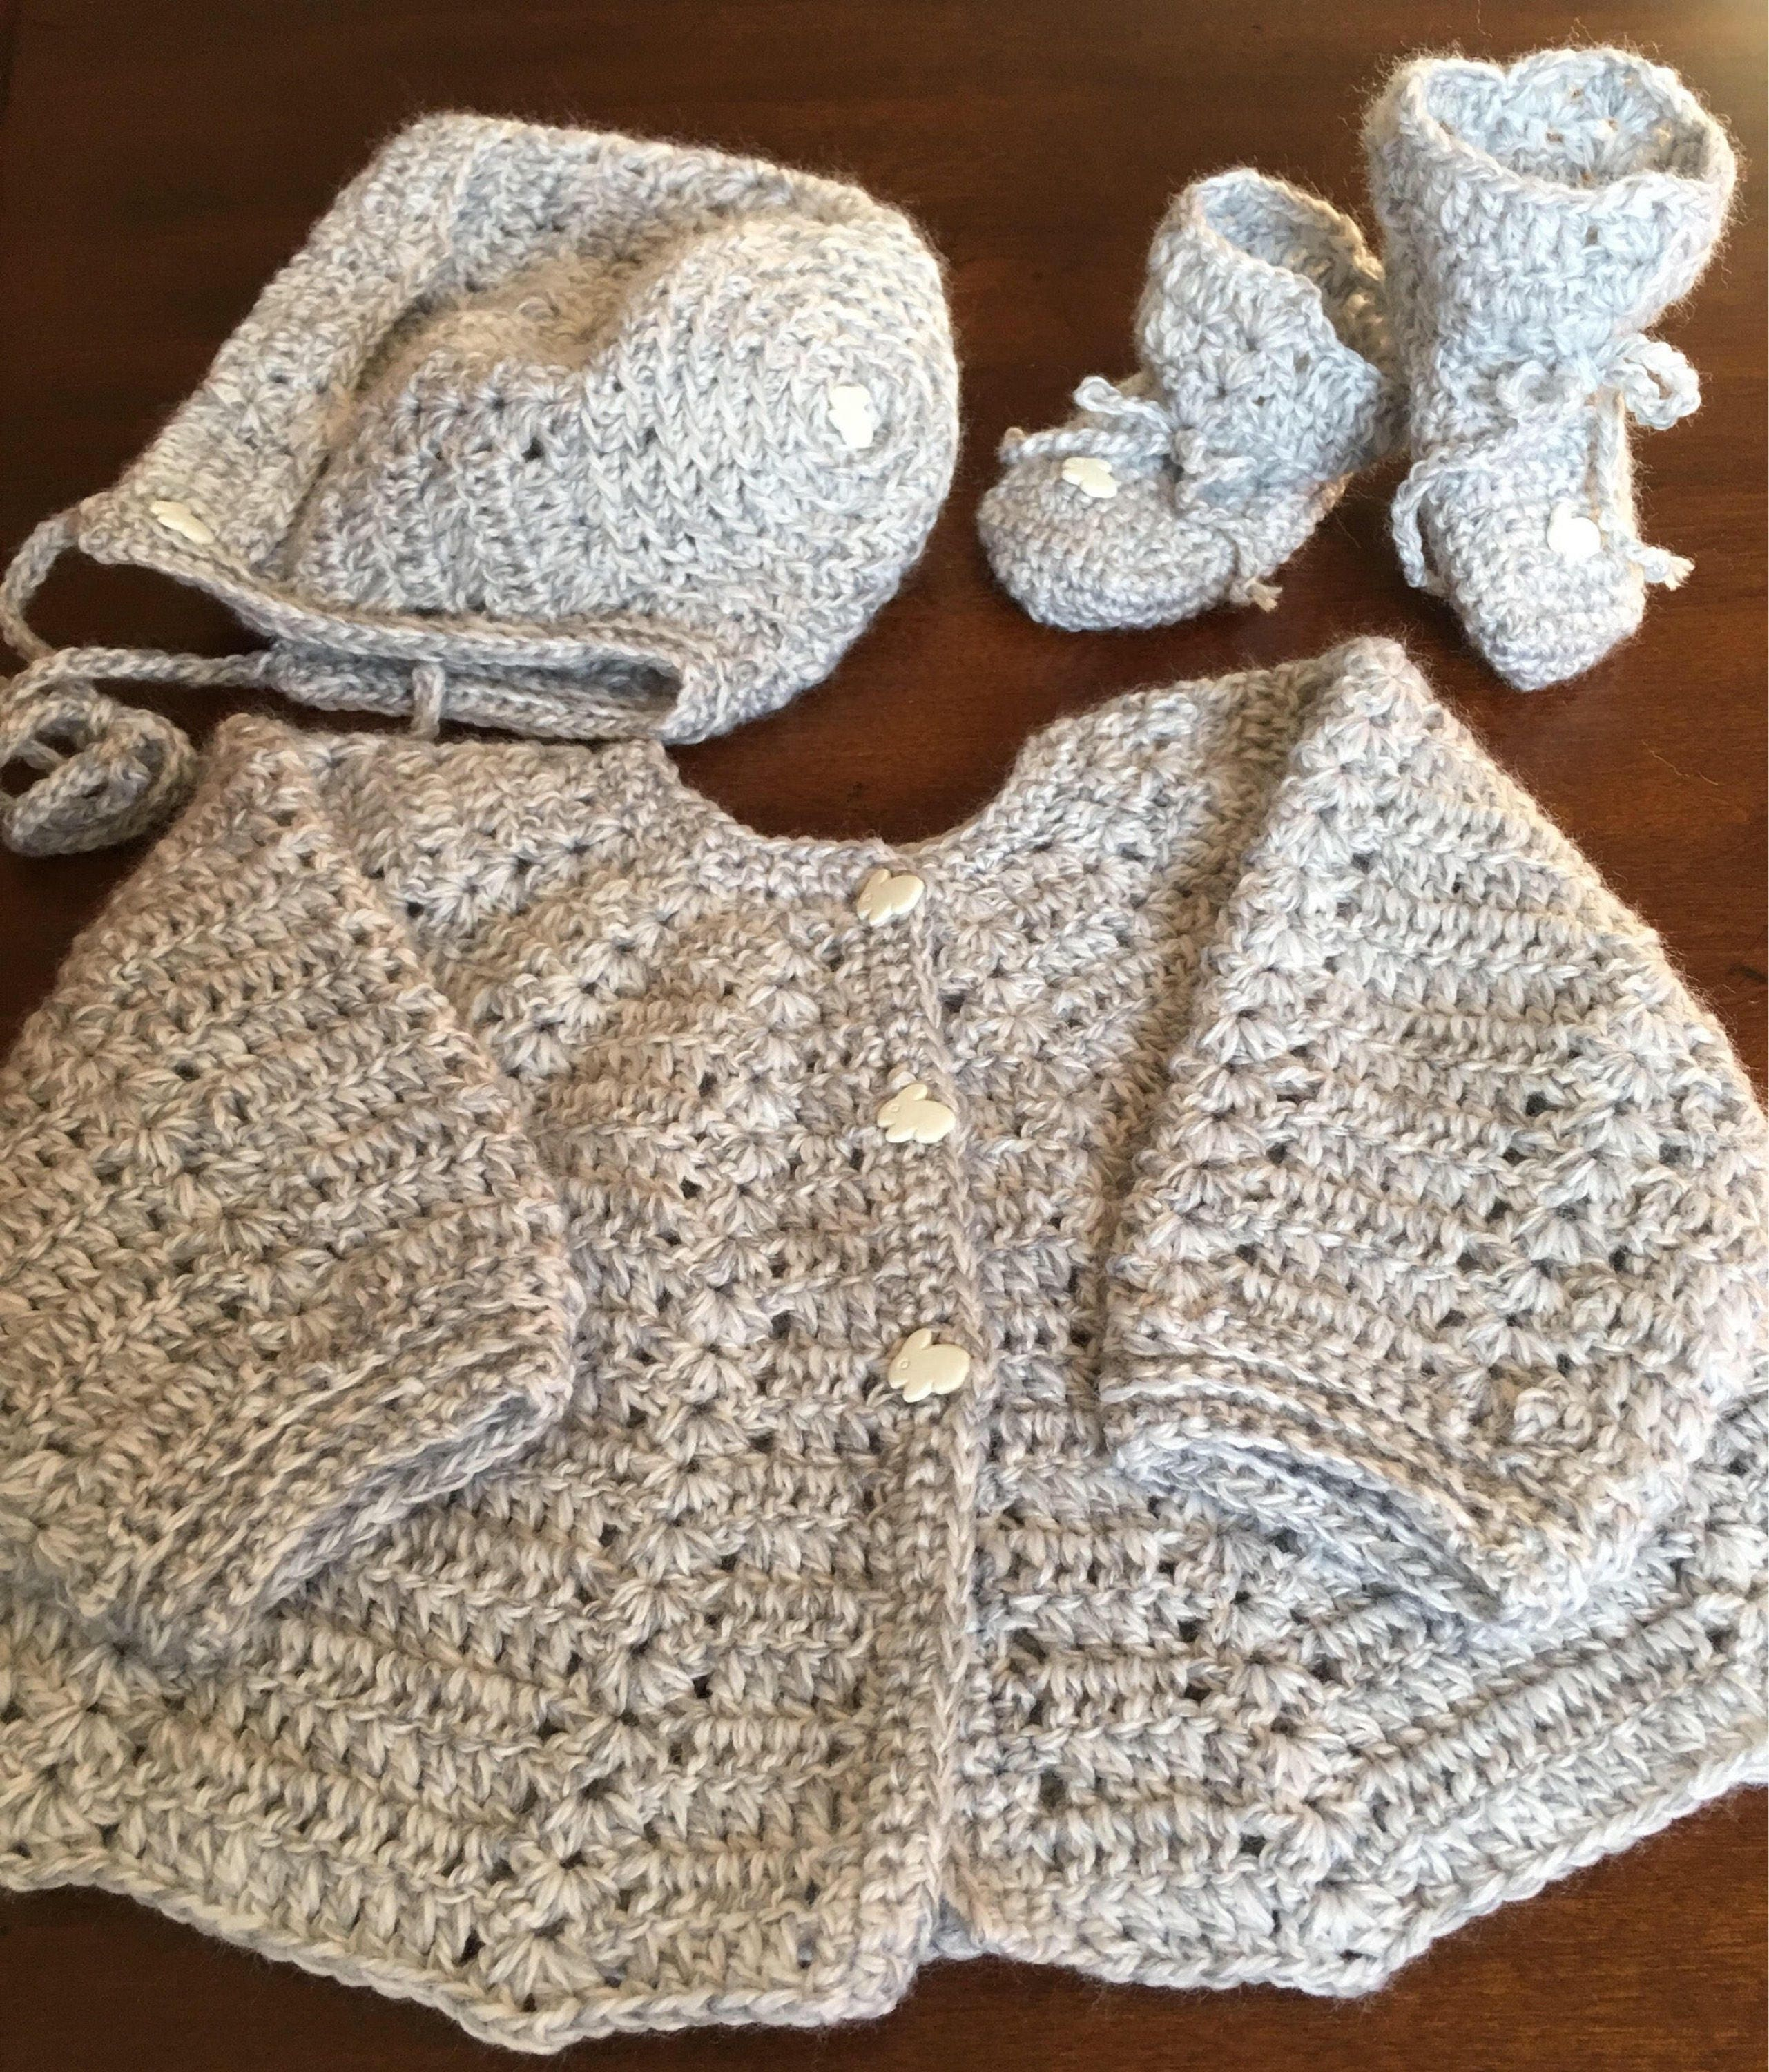 Hand crochet baby boygirl coming home outfitlight gray cardigan hand crochet baby boygirl coming home outfitlight gray cardigan sweater setsoft quality yarn 3 sizesbaby showercustom mademany colors bankloansurffo Images